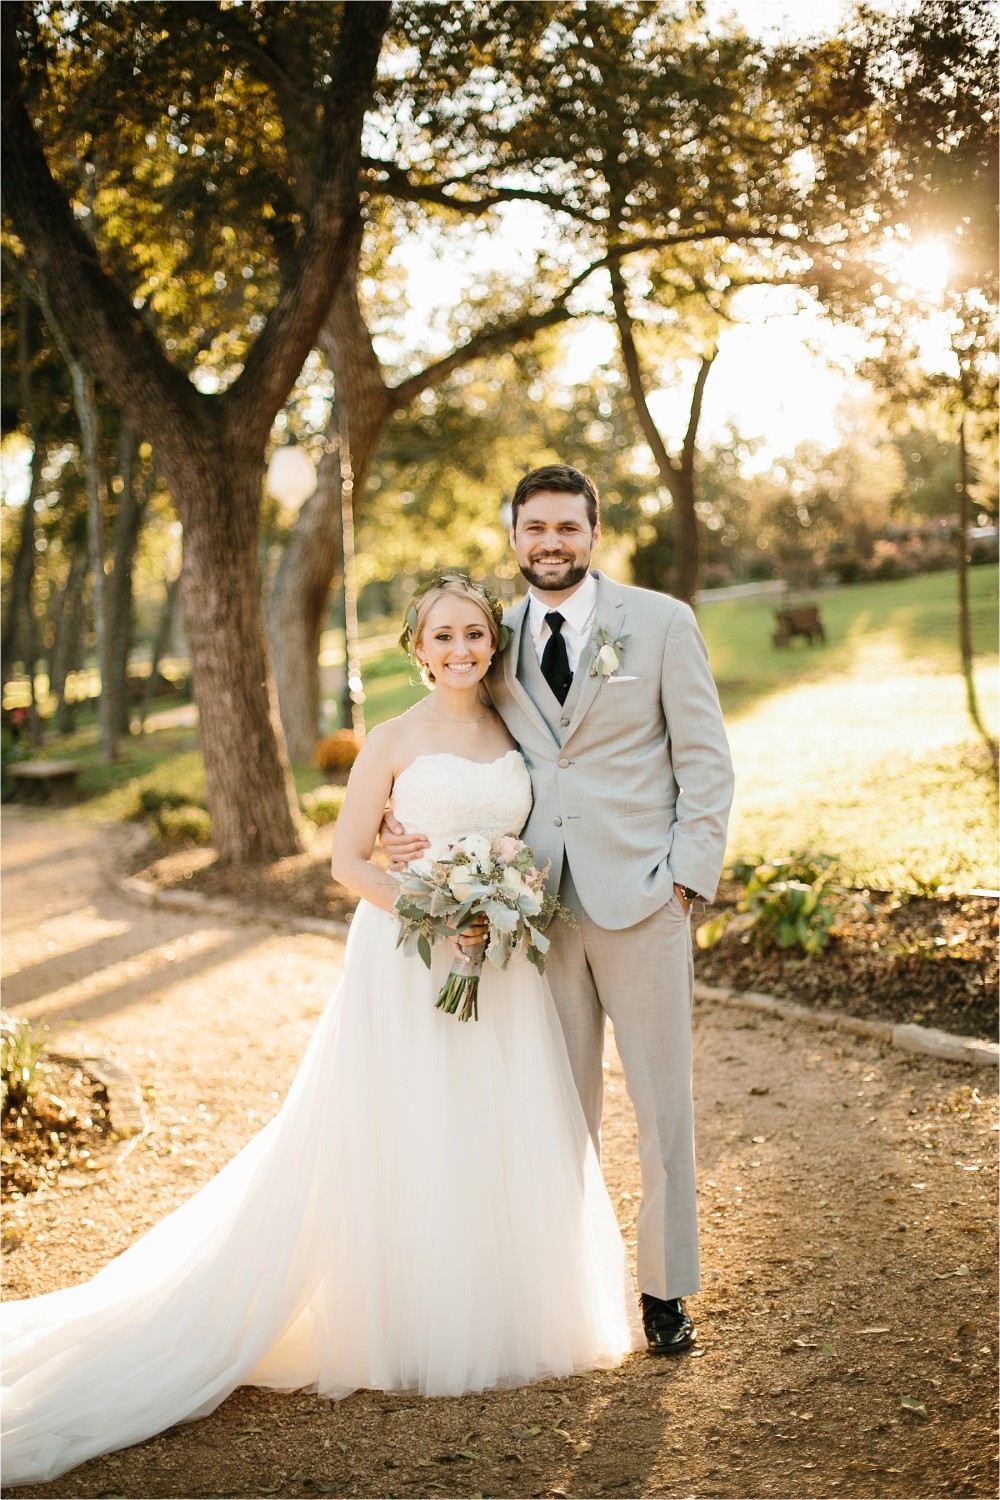 brad-lara-__-a-grey-and-blush-pink-intimate-wedding-at-hidden-waters-event-center-in-waxahachie-tx-by-north-texas-wedding-photographer-rachel-meagan-photography-_-055